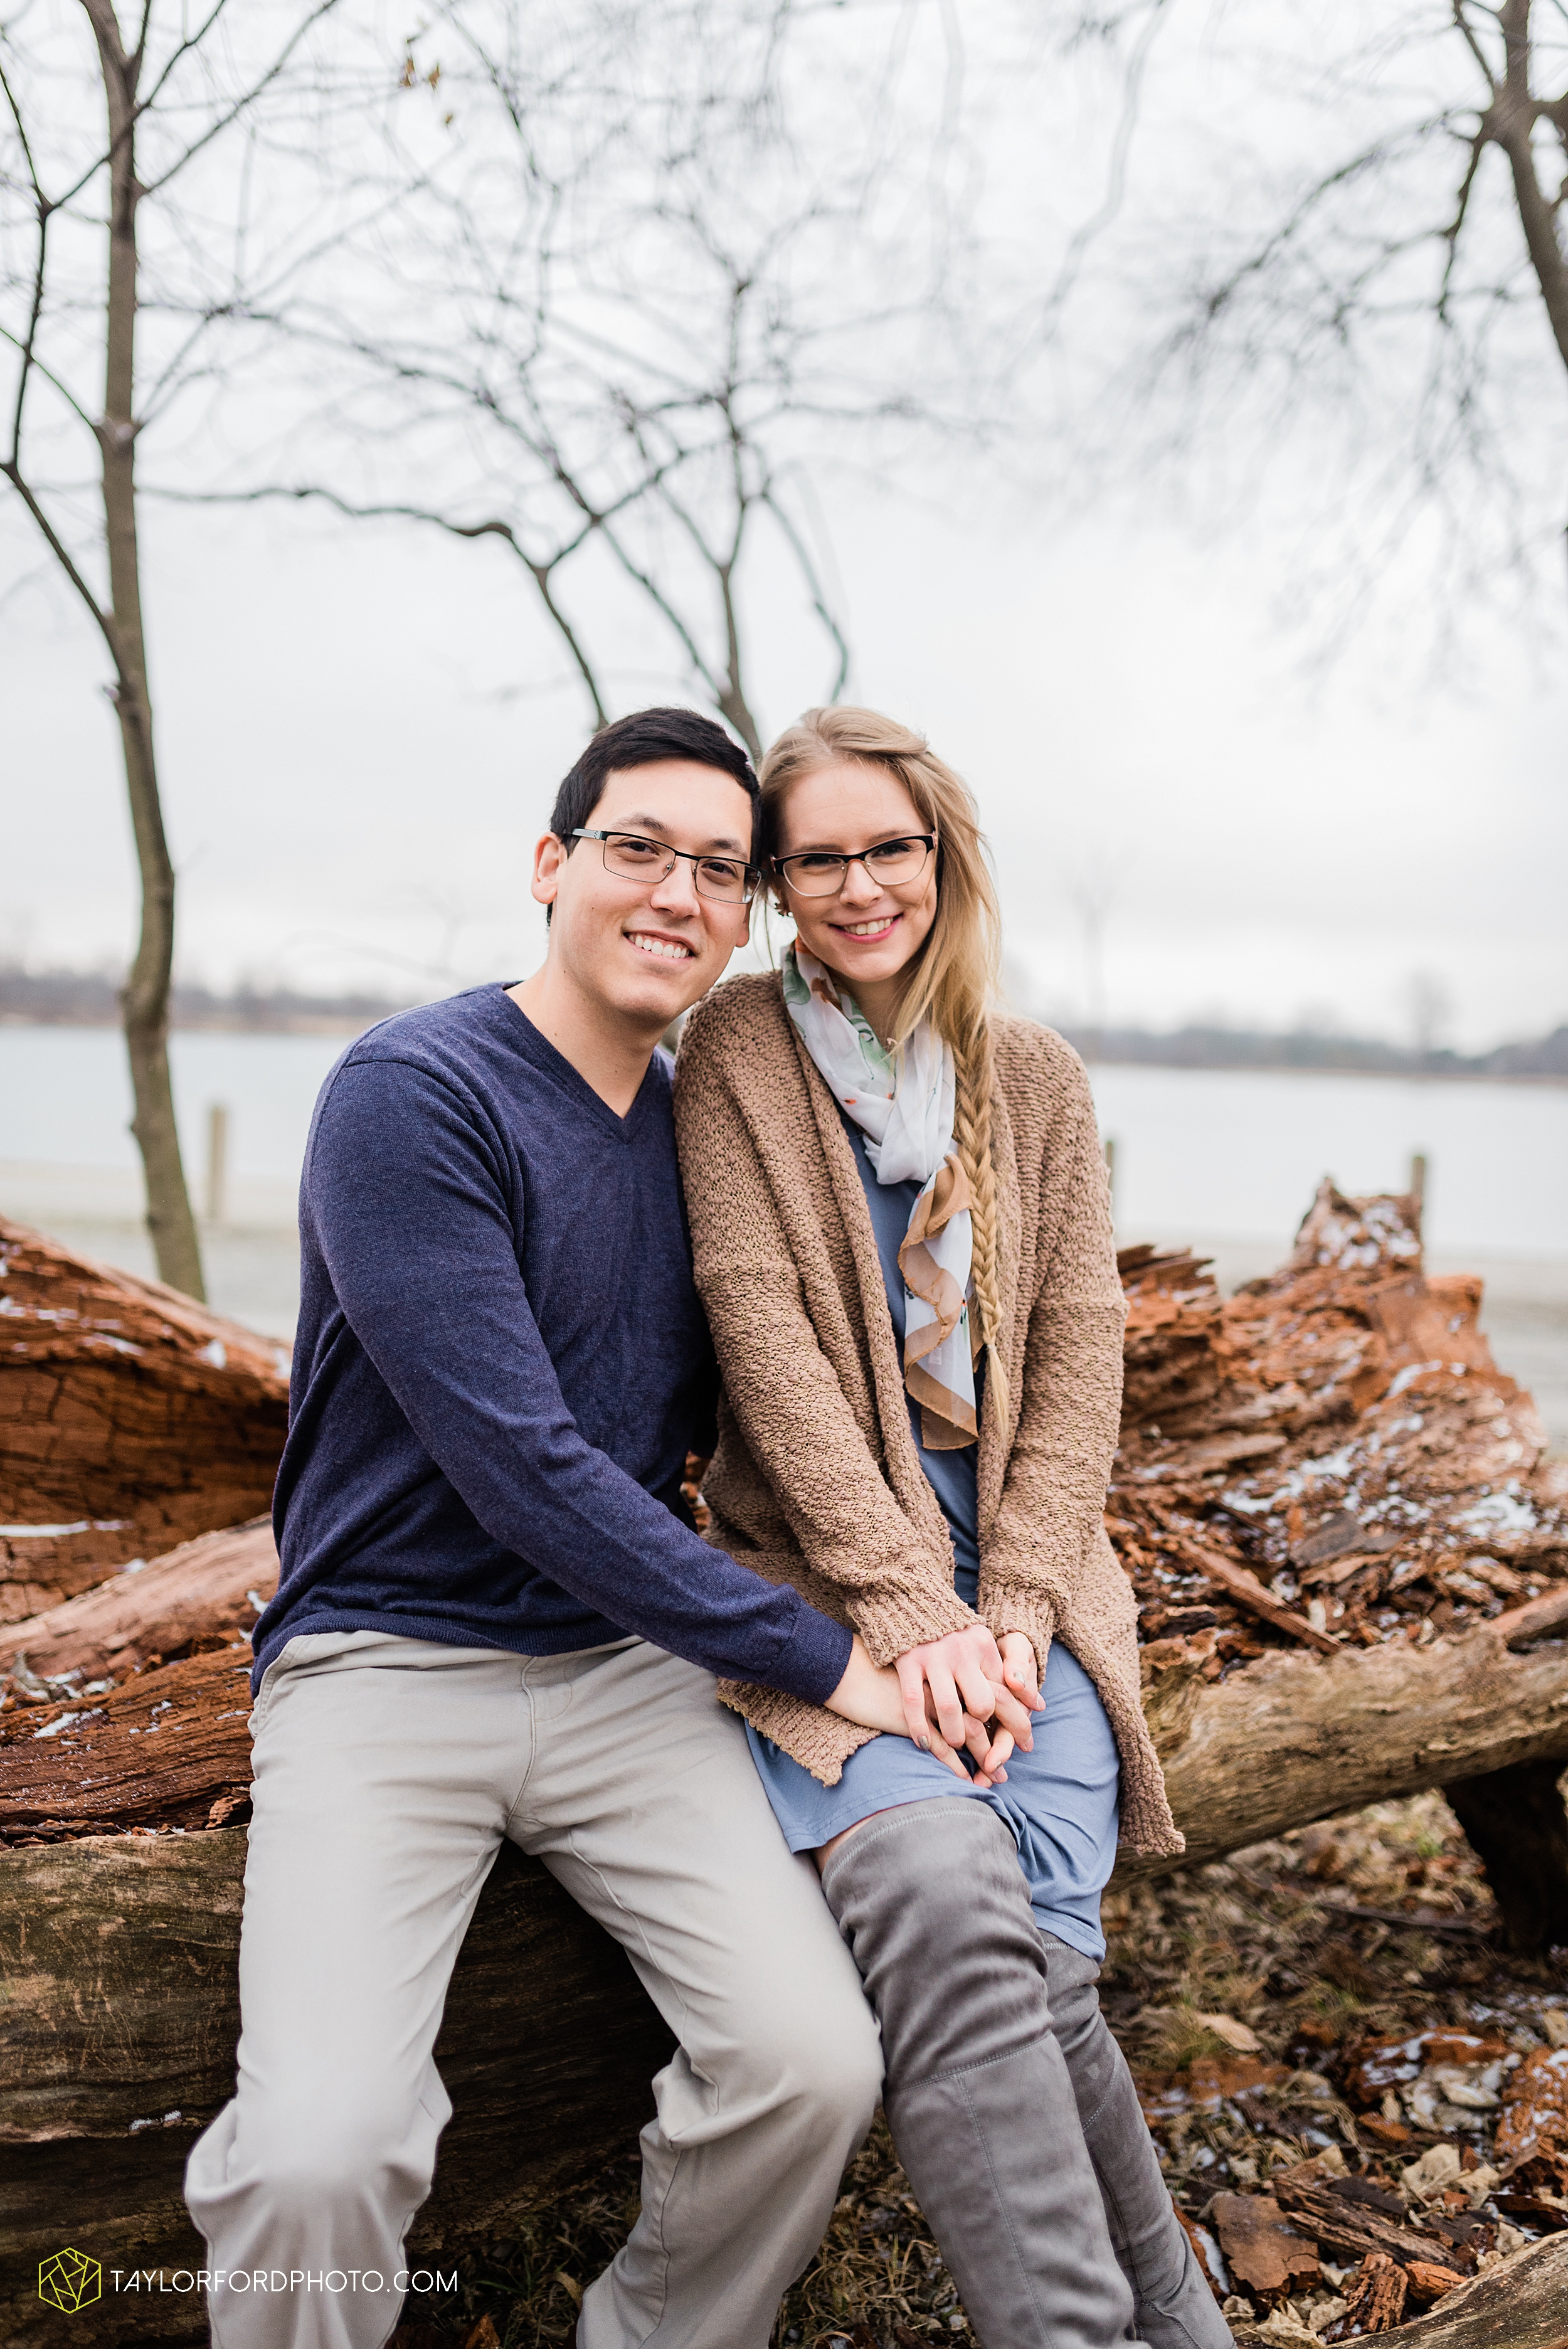 at-home-fidler-pond-park-downtown-goshen-indiana-engagement-photography-taylor-ford-hirschy-photographer_1991.jpg